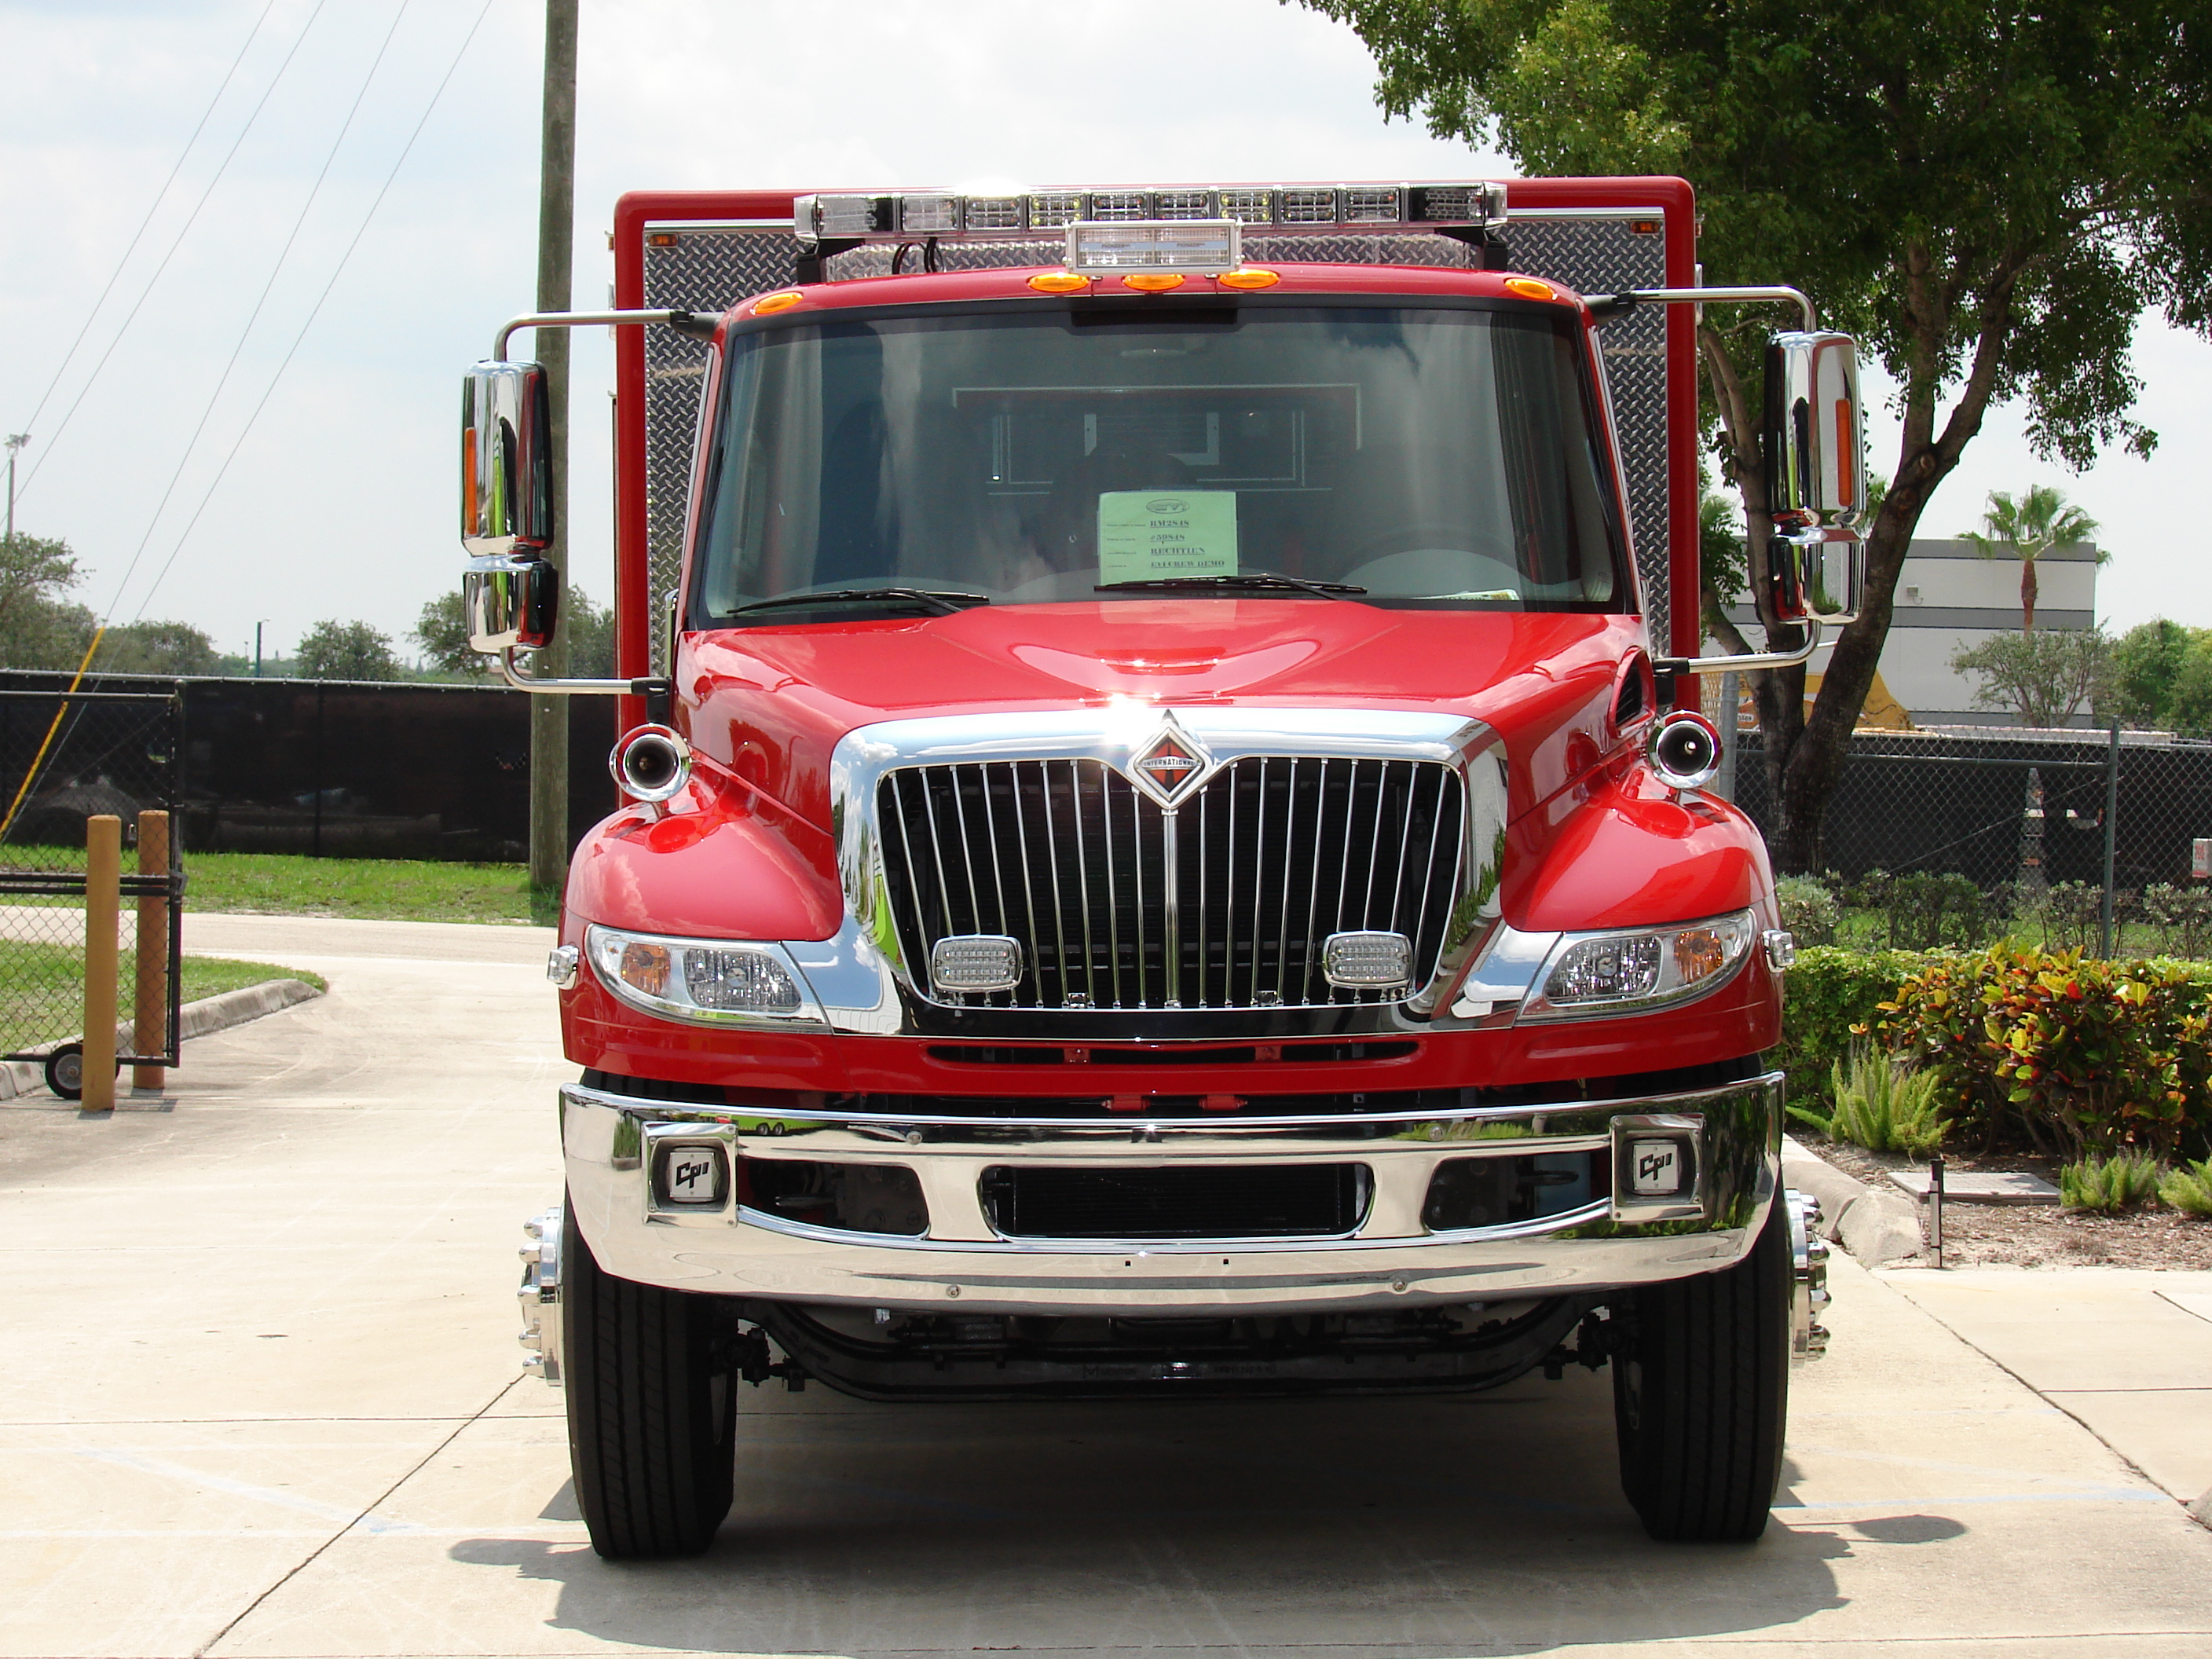 18-Ft. Crew Body Rescue Truck